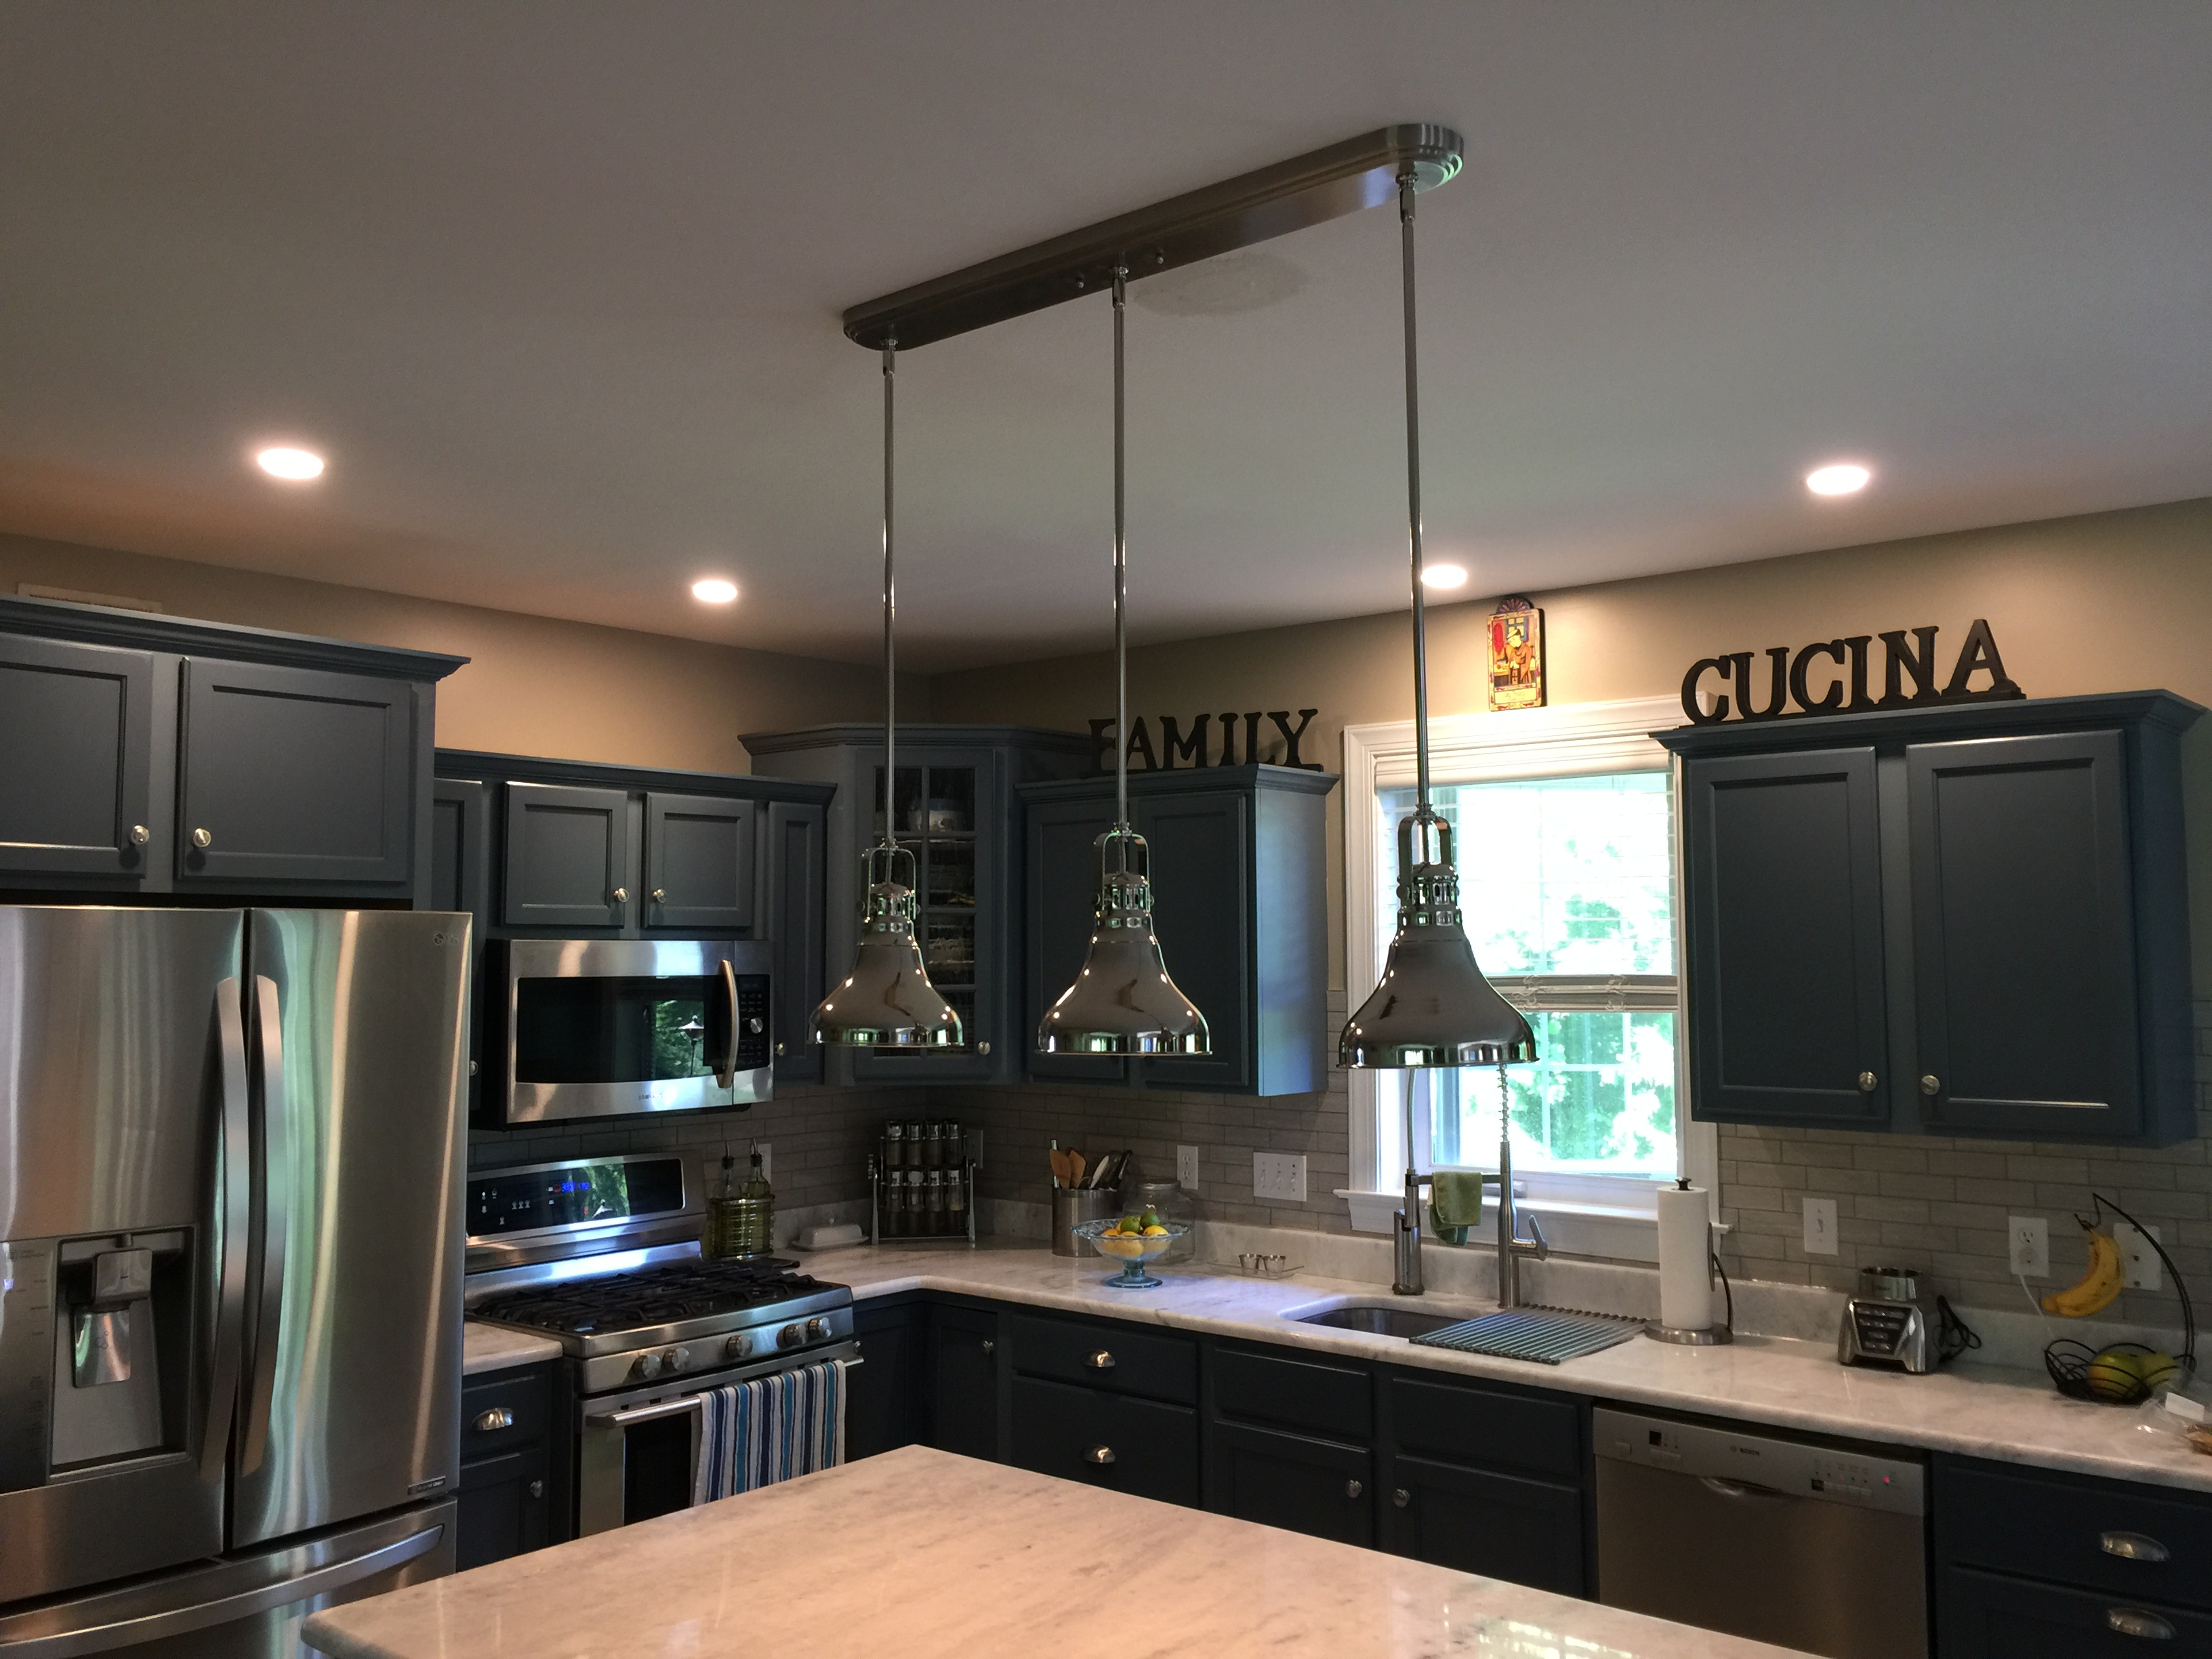 KITCHEN ISLAND LIGHTS, ISLAND RECEPTACLES AND OVEN RECESSED LIGHT